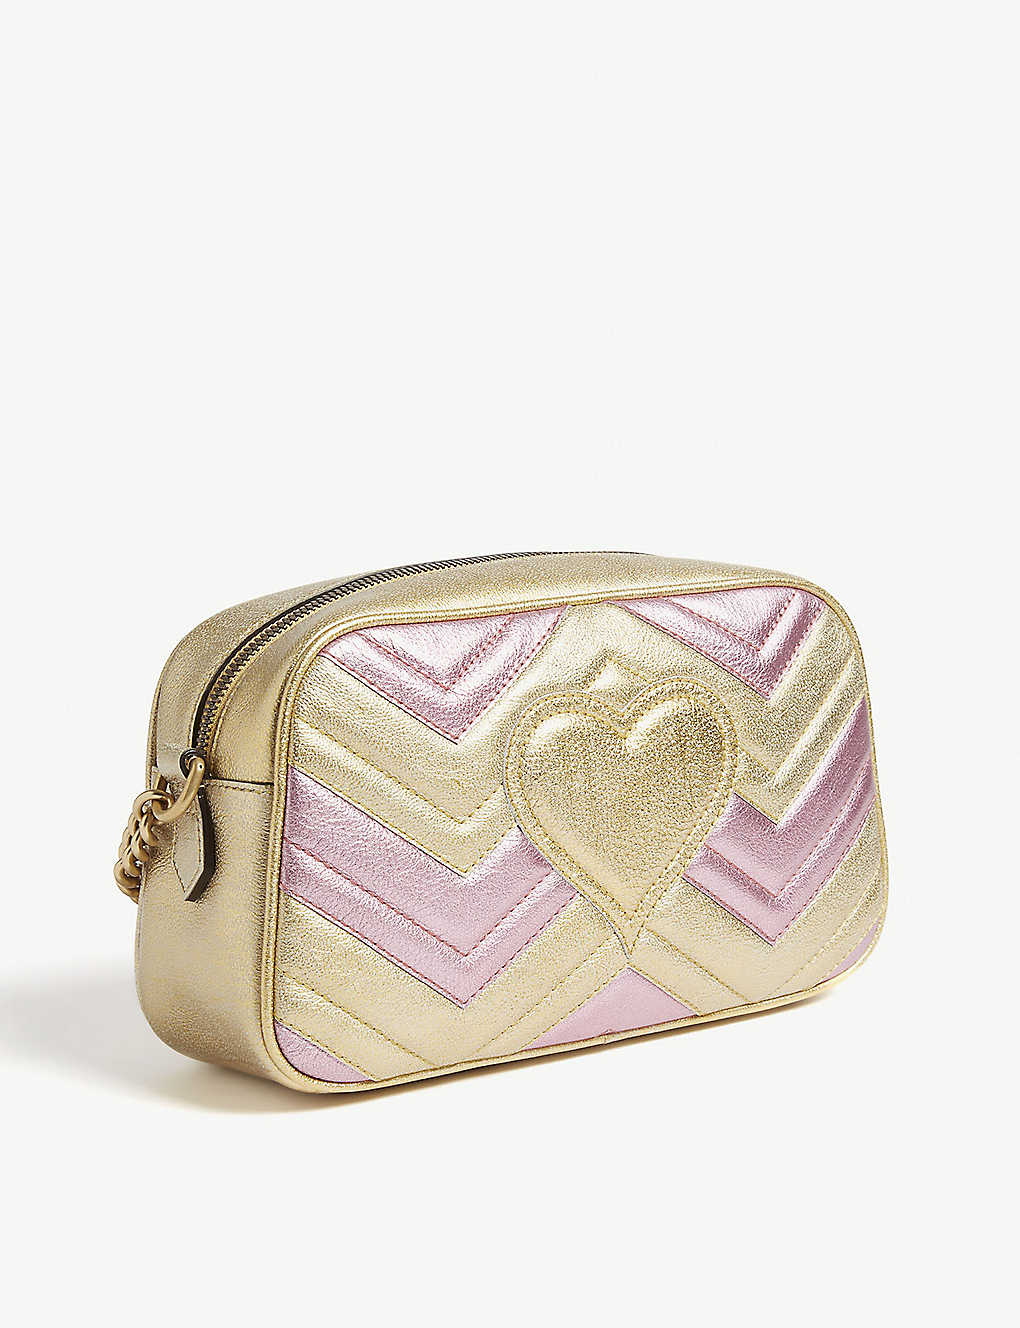 e9947c3a83f ... GG Marmont metallic quilted leather shoulder bag - Gold pink ...